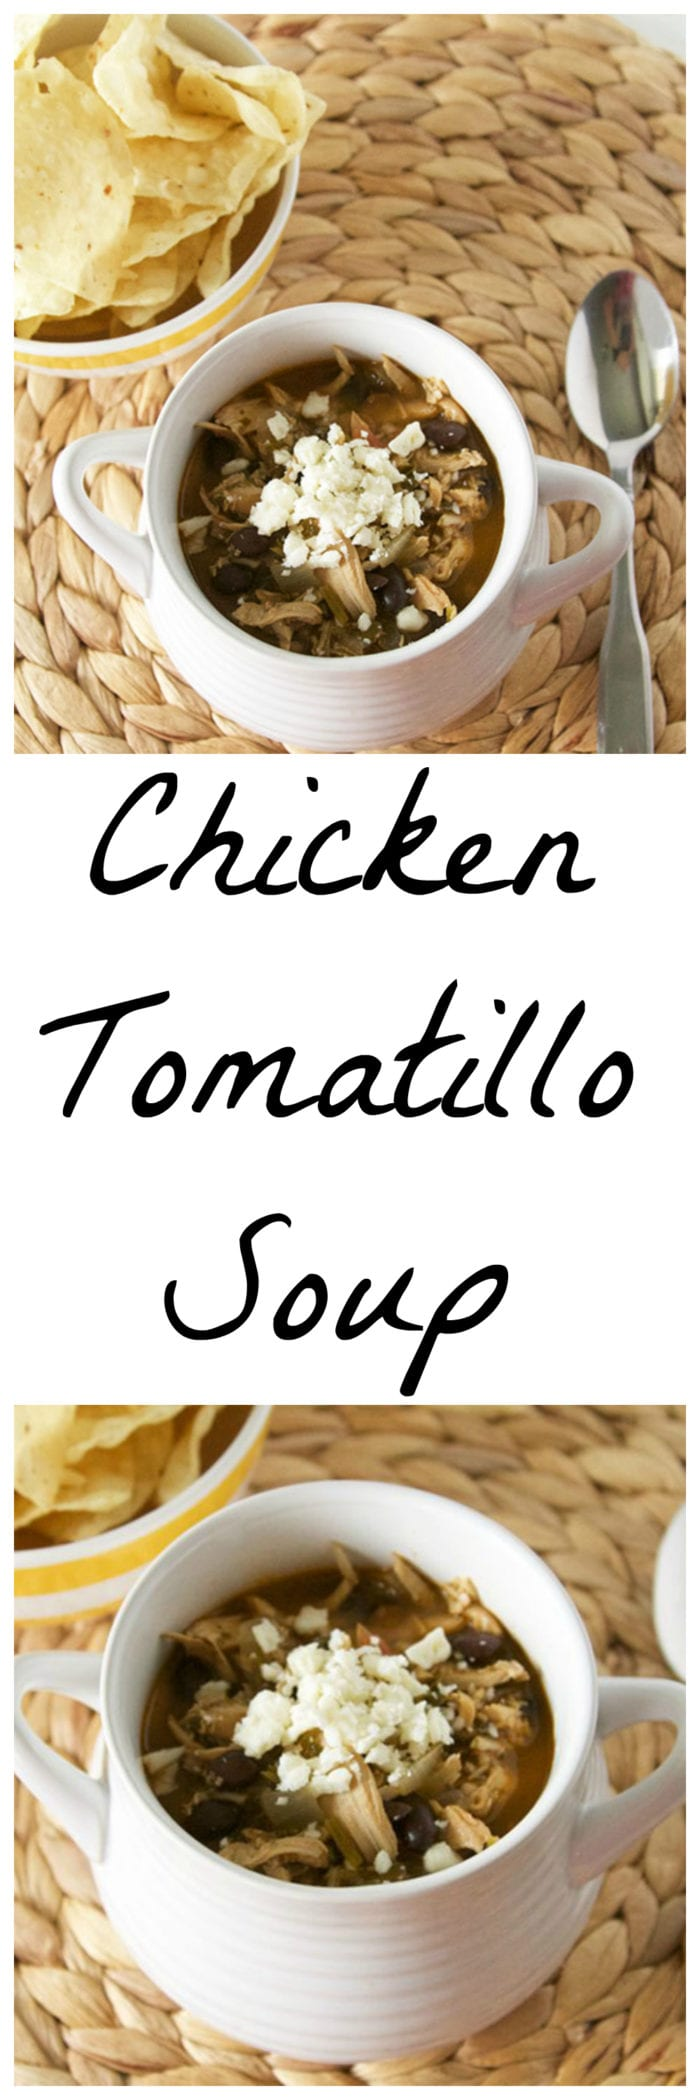 Chicken Tomatillo Soup is a simple slow cooker dinner that everyone will love! www.cookingwithruthie.com